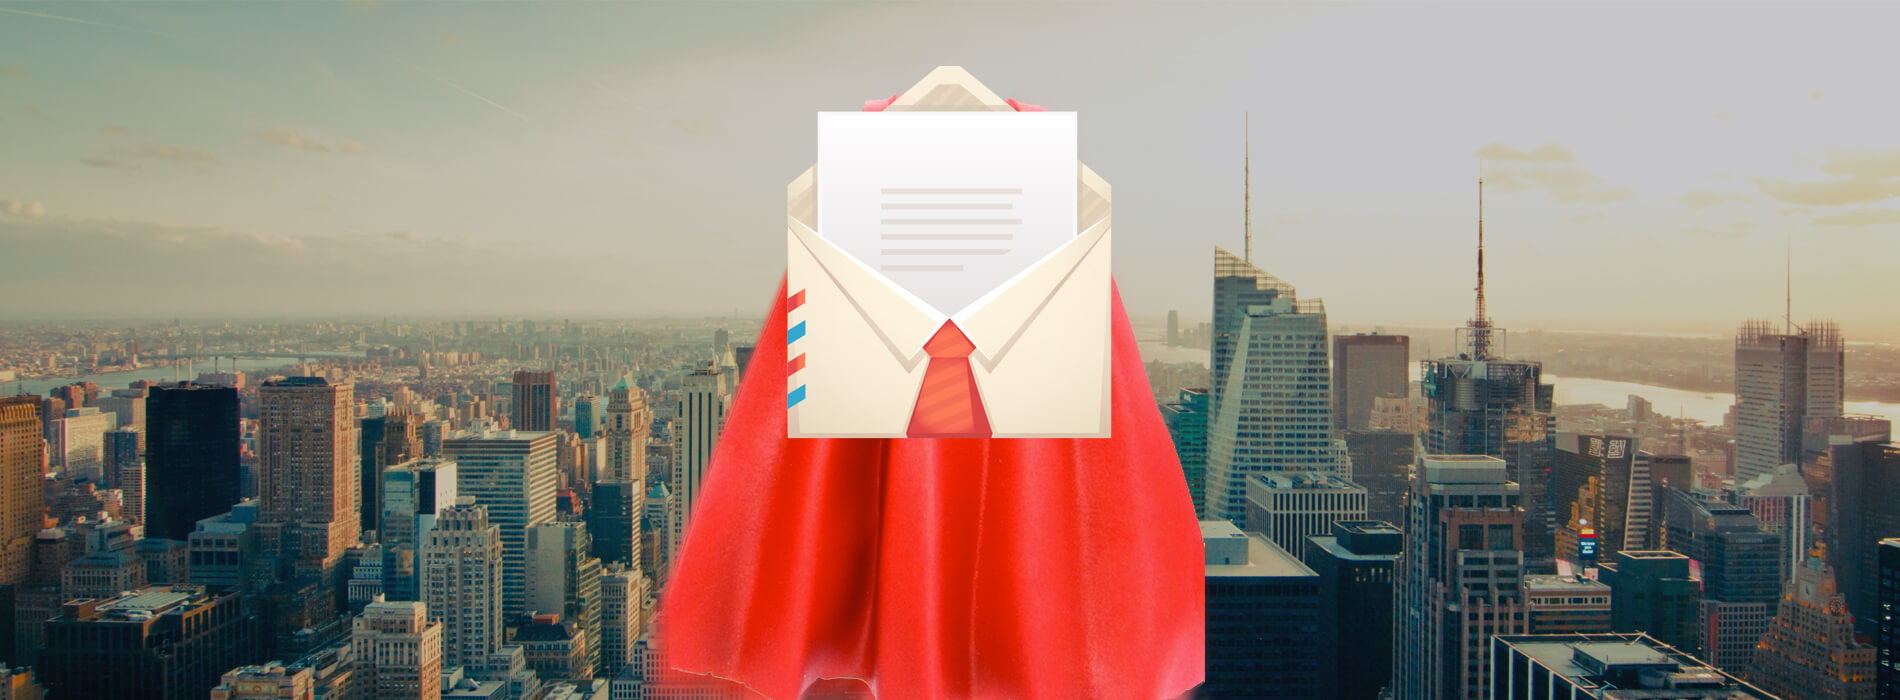 5 Ways to Improve Remarketing Email Conversions